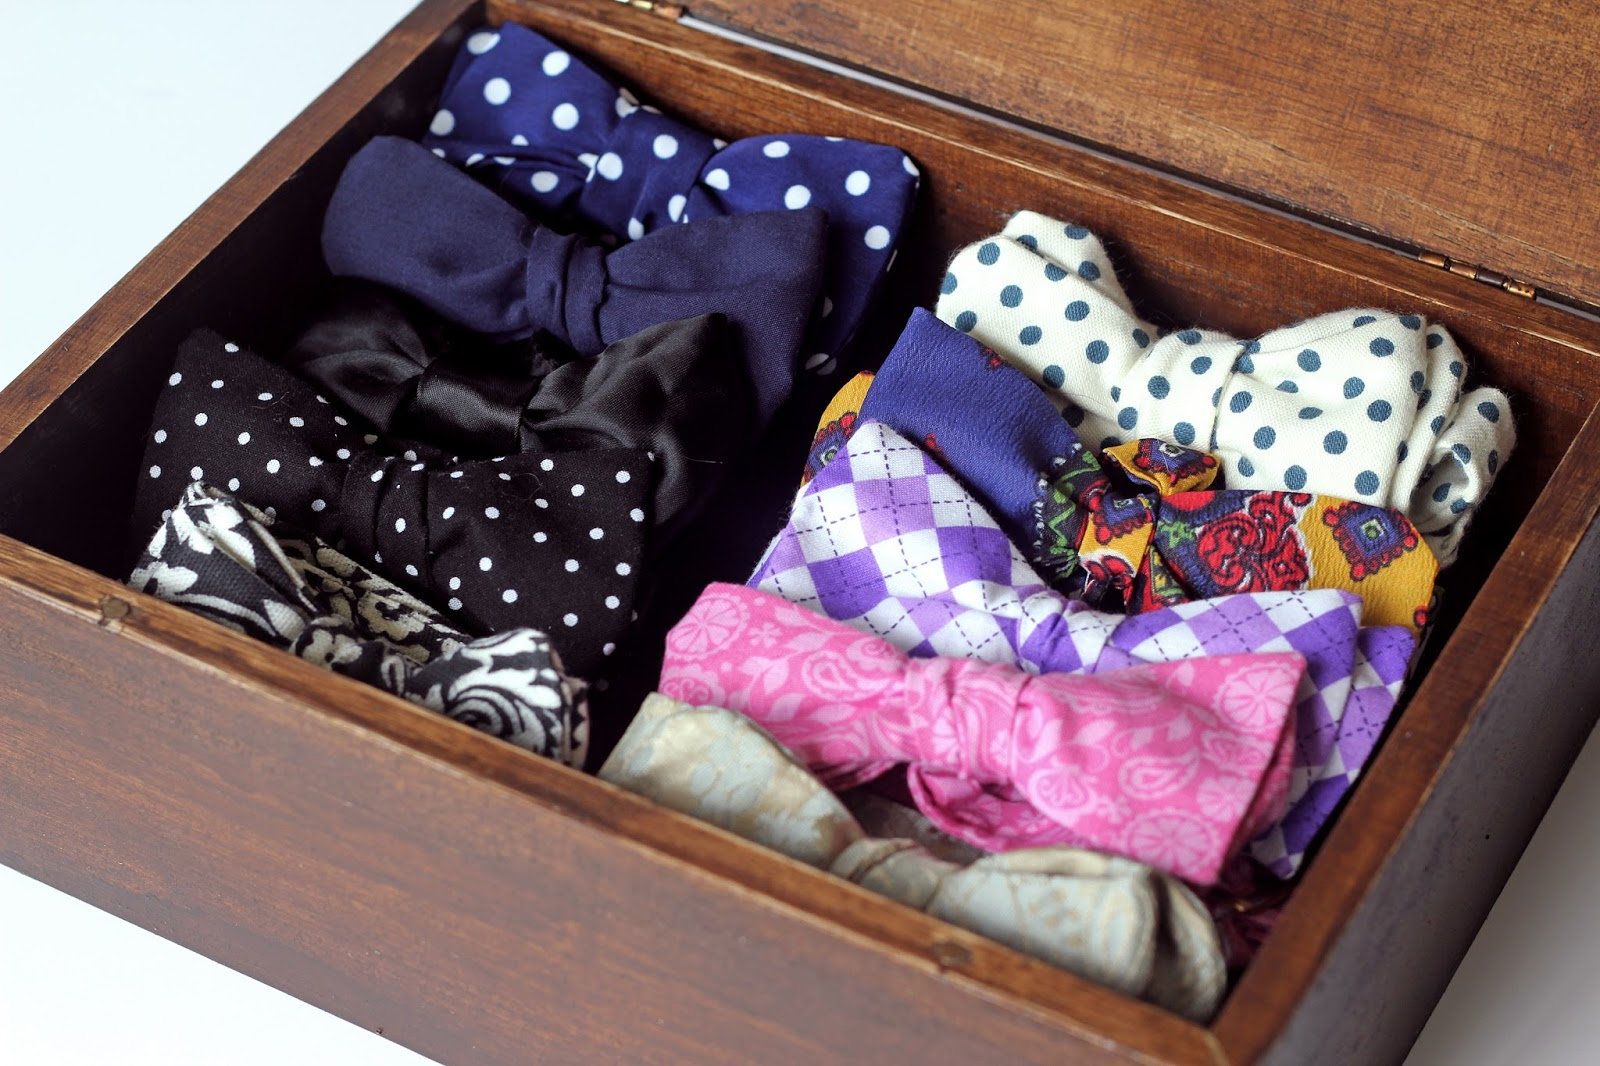 on ties drawer home com organizer closet cell socks aliexpress from tie in alibaba storage box garden item bamboo boxes drawers bins charcoal underwear bar